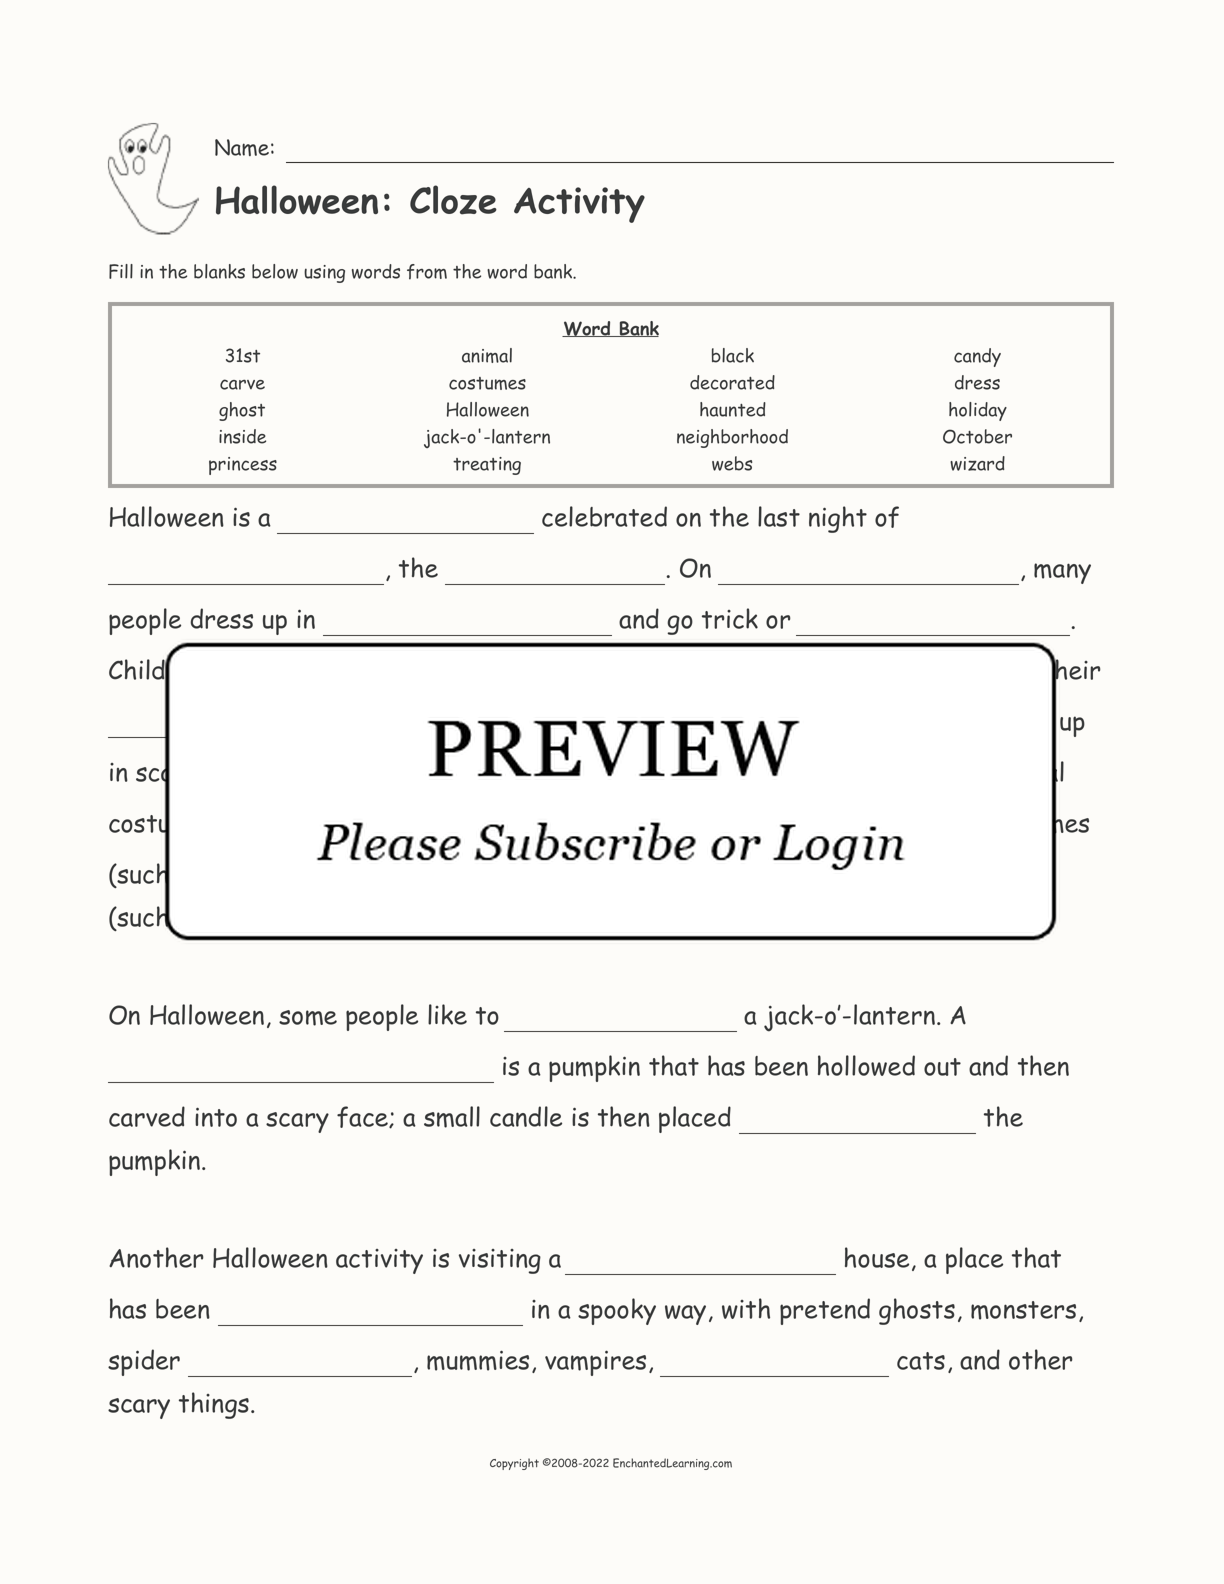 Halloween Cloze Activity